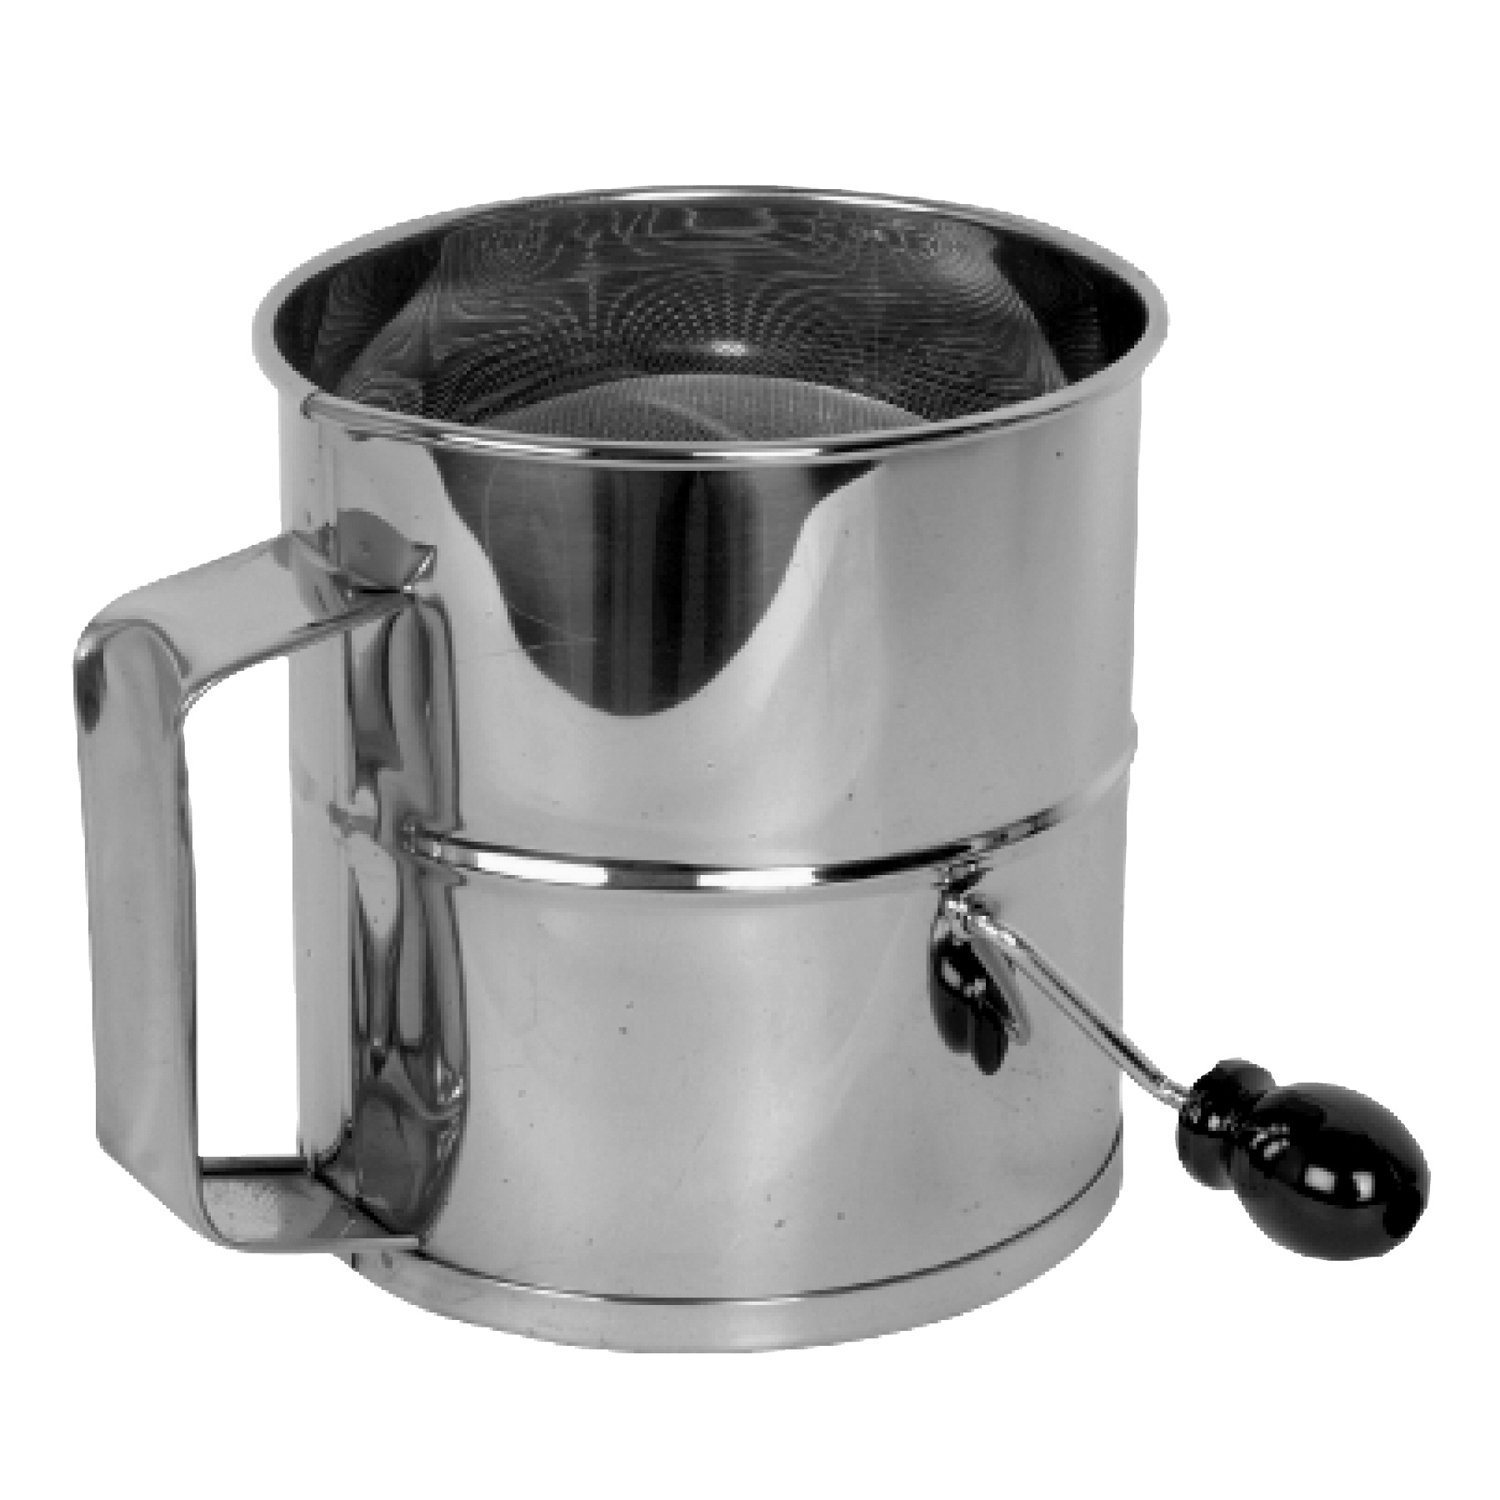 Excellante 8 Cup Flour Sifter Thunder Group 3248